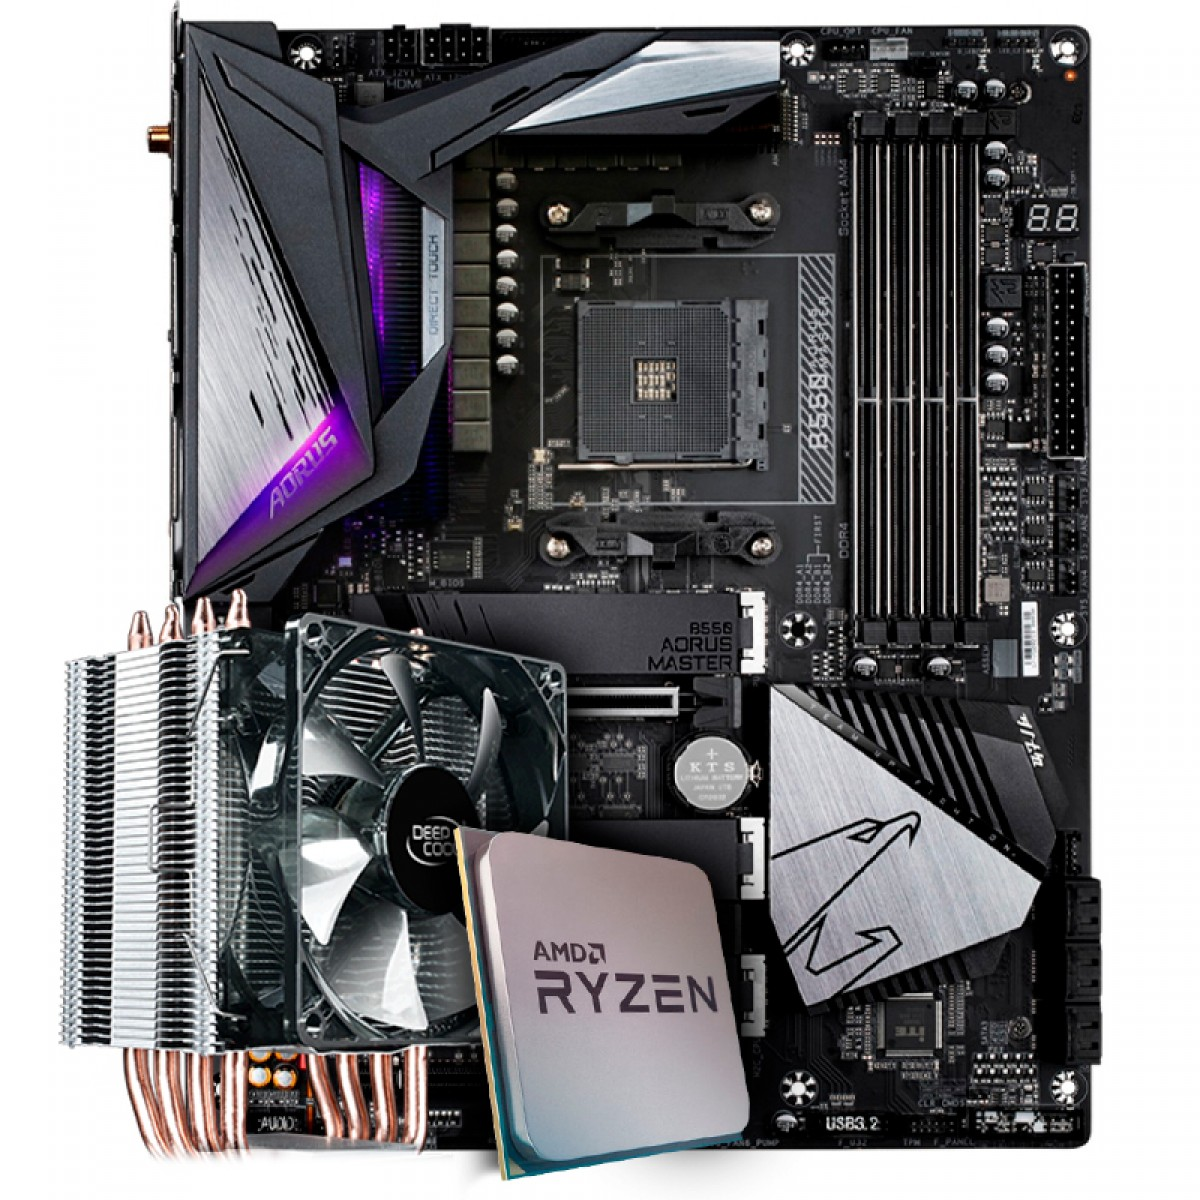 Kit Upgrade Placa Mãe Gigabyte B550 Aorus Master, Chipset B550 AMD AM4 + Processador AMD Ryzen 9 3900x 3.8GHz + Cooler Deepcool Gammaxx